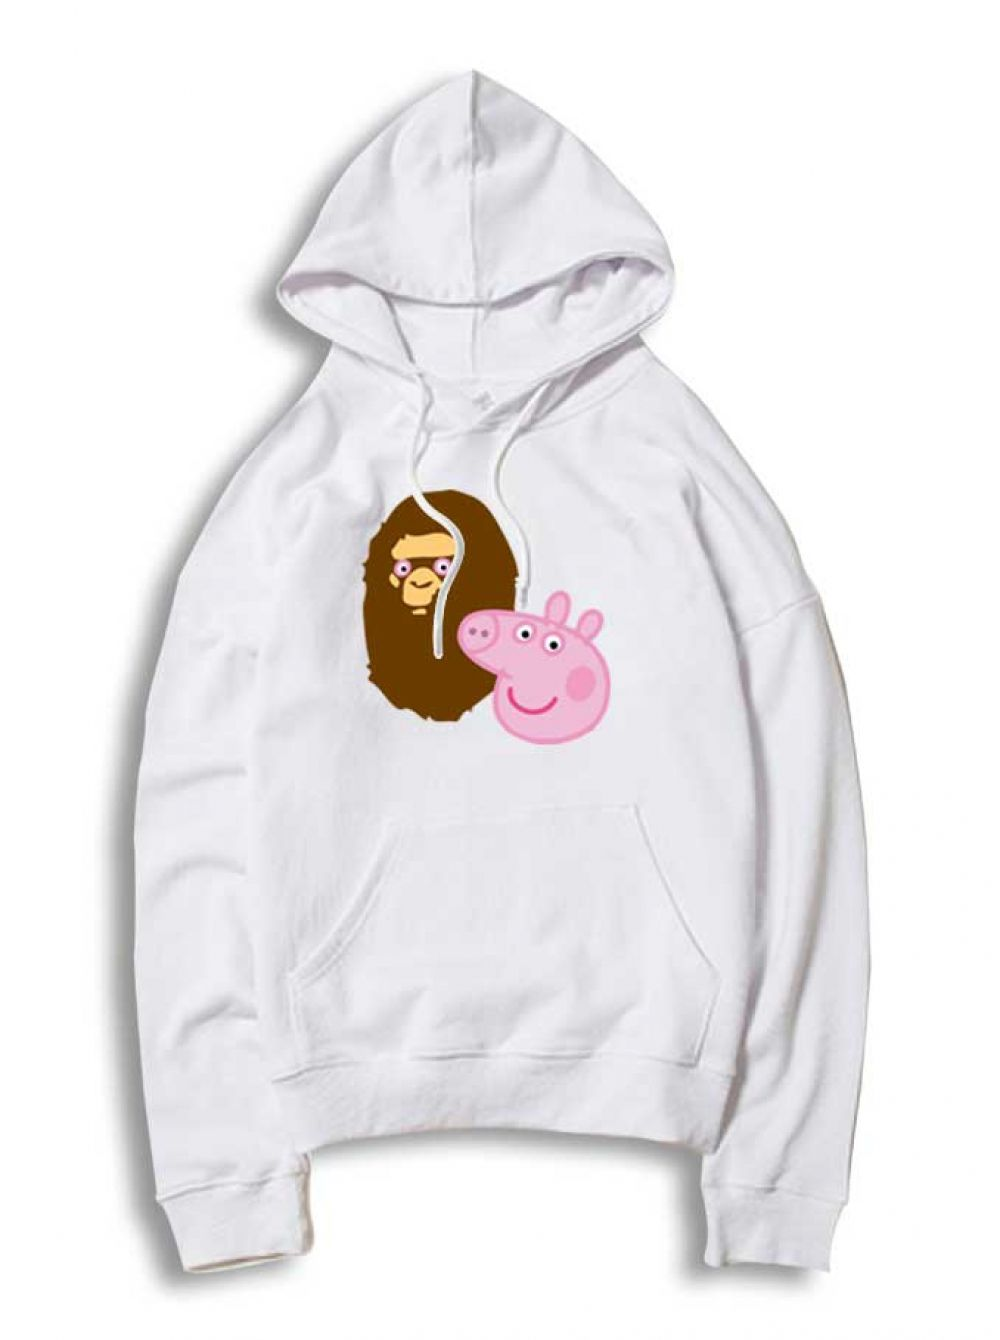 6f40c2fd A Bathing Ape Bape Head X Peppa Pig Parody Hoodie $ 33.50 #Tee #Hype # Outfits #Outfit #Hypebeast #fashion #shirt #Tees #Tops #Teen